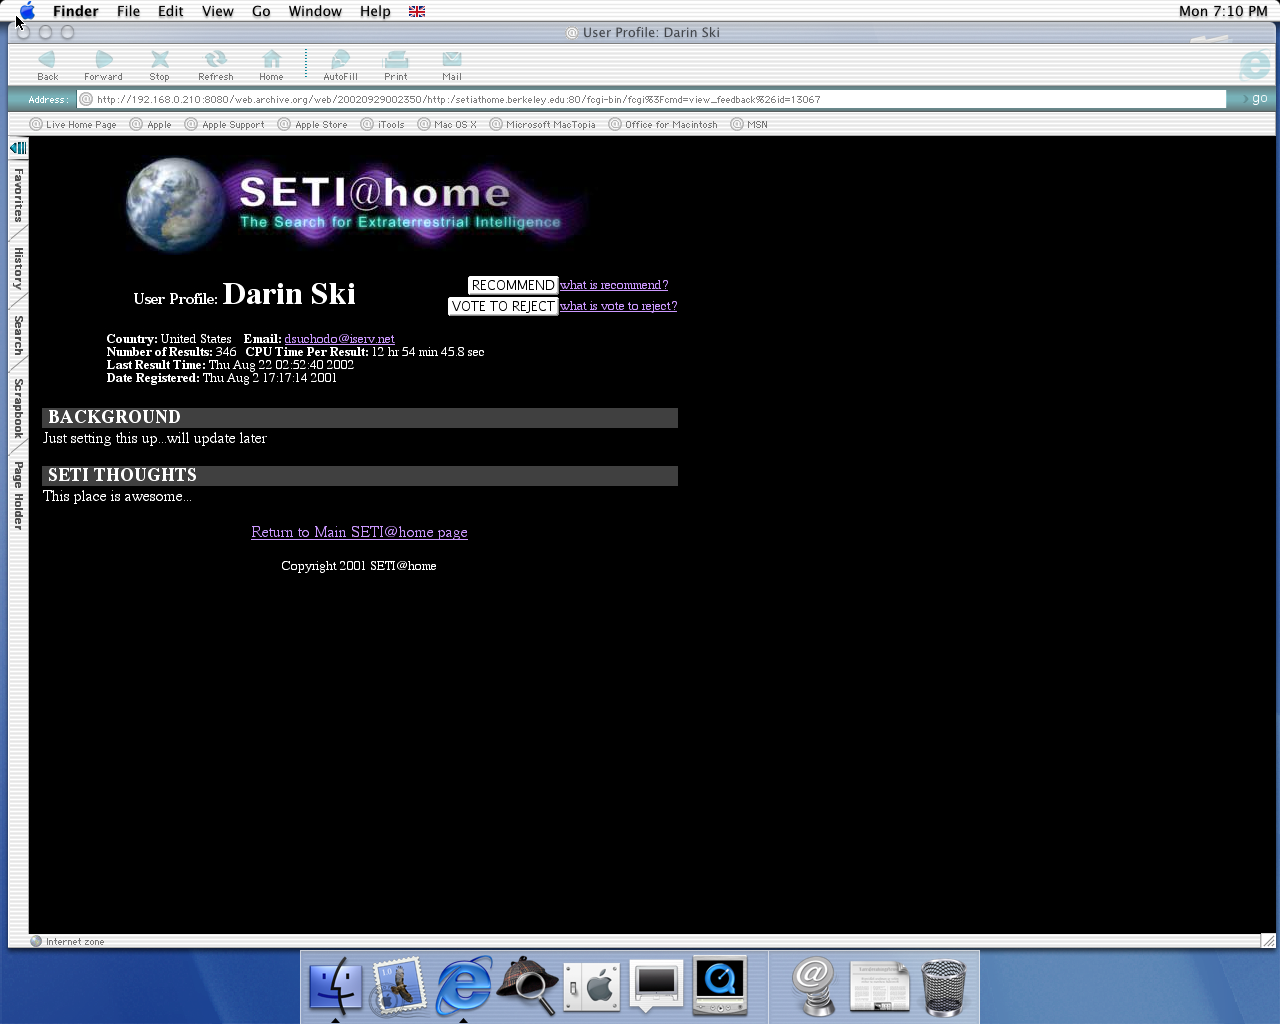 OS X 10.0 PPC with Microsoft Internet Explorer 5.1 for Mac Preview displaying a page from Seti@Home archived at September 29, 2002 at 00:23:50